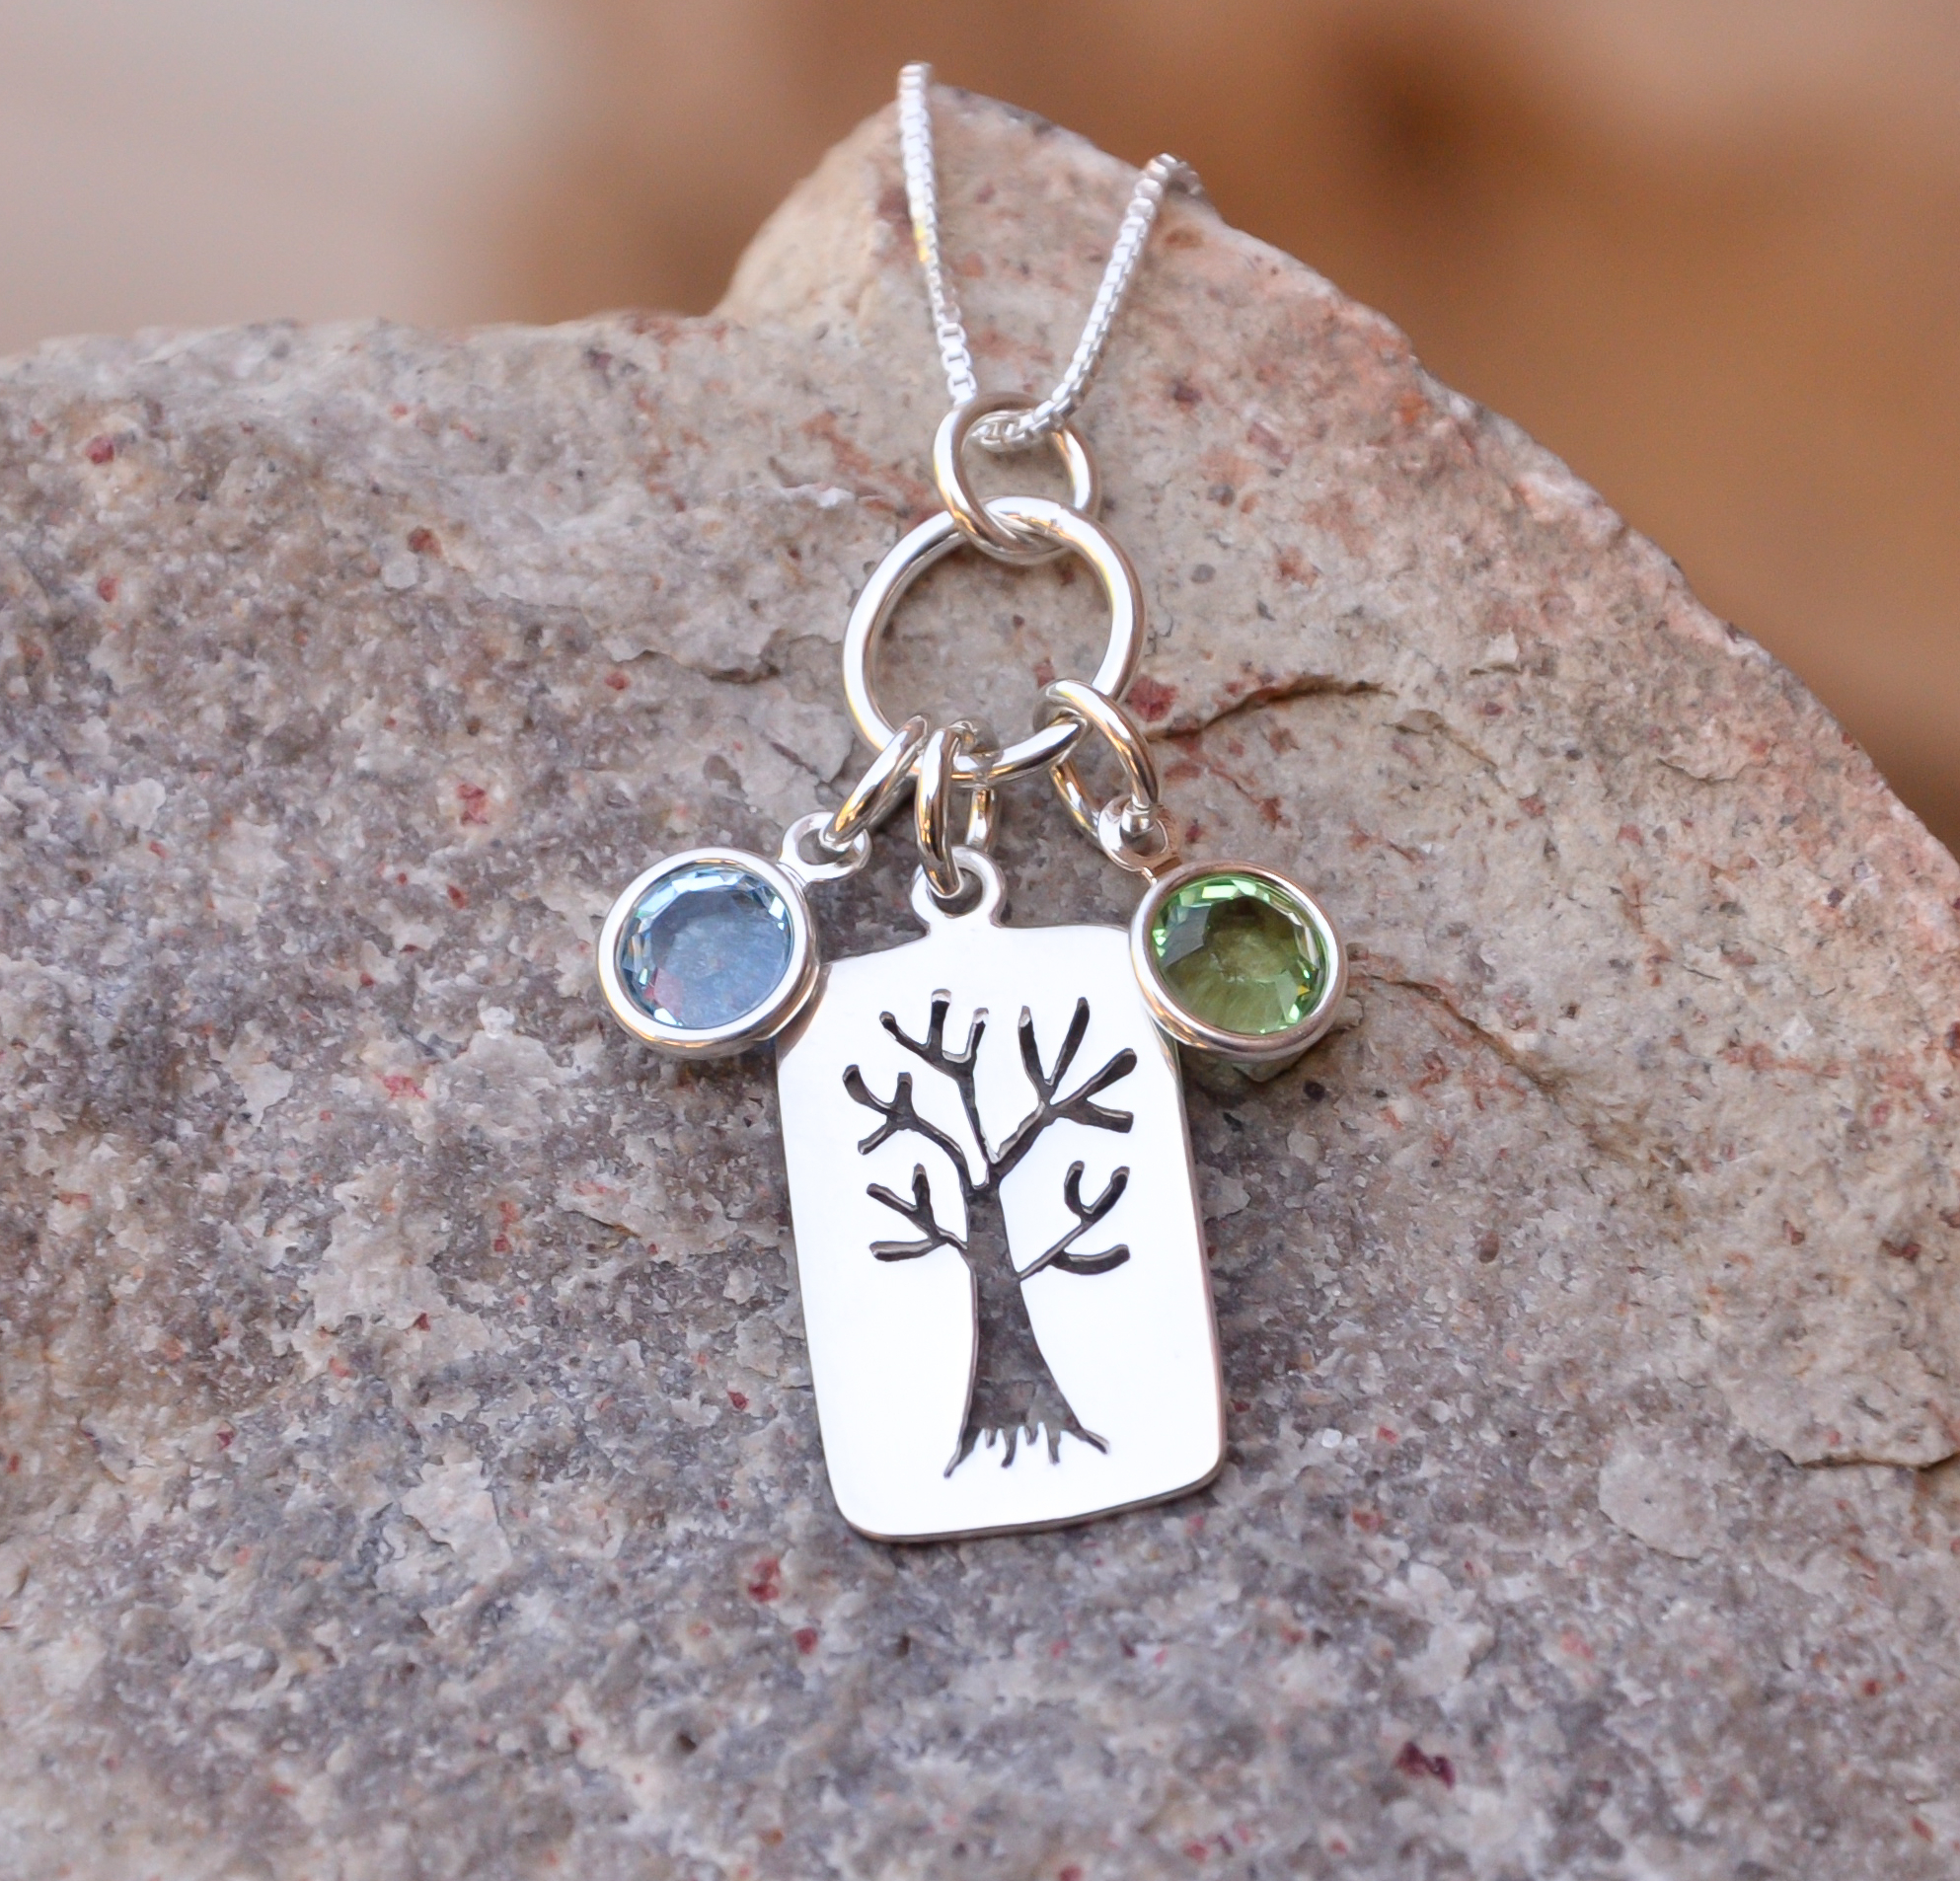 Family Tree Necklace With Regard To Most Recently Released Dangling Family Tree Rings (Gallery 21 of 25)